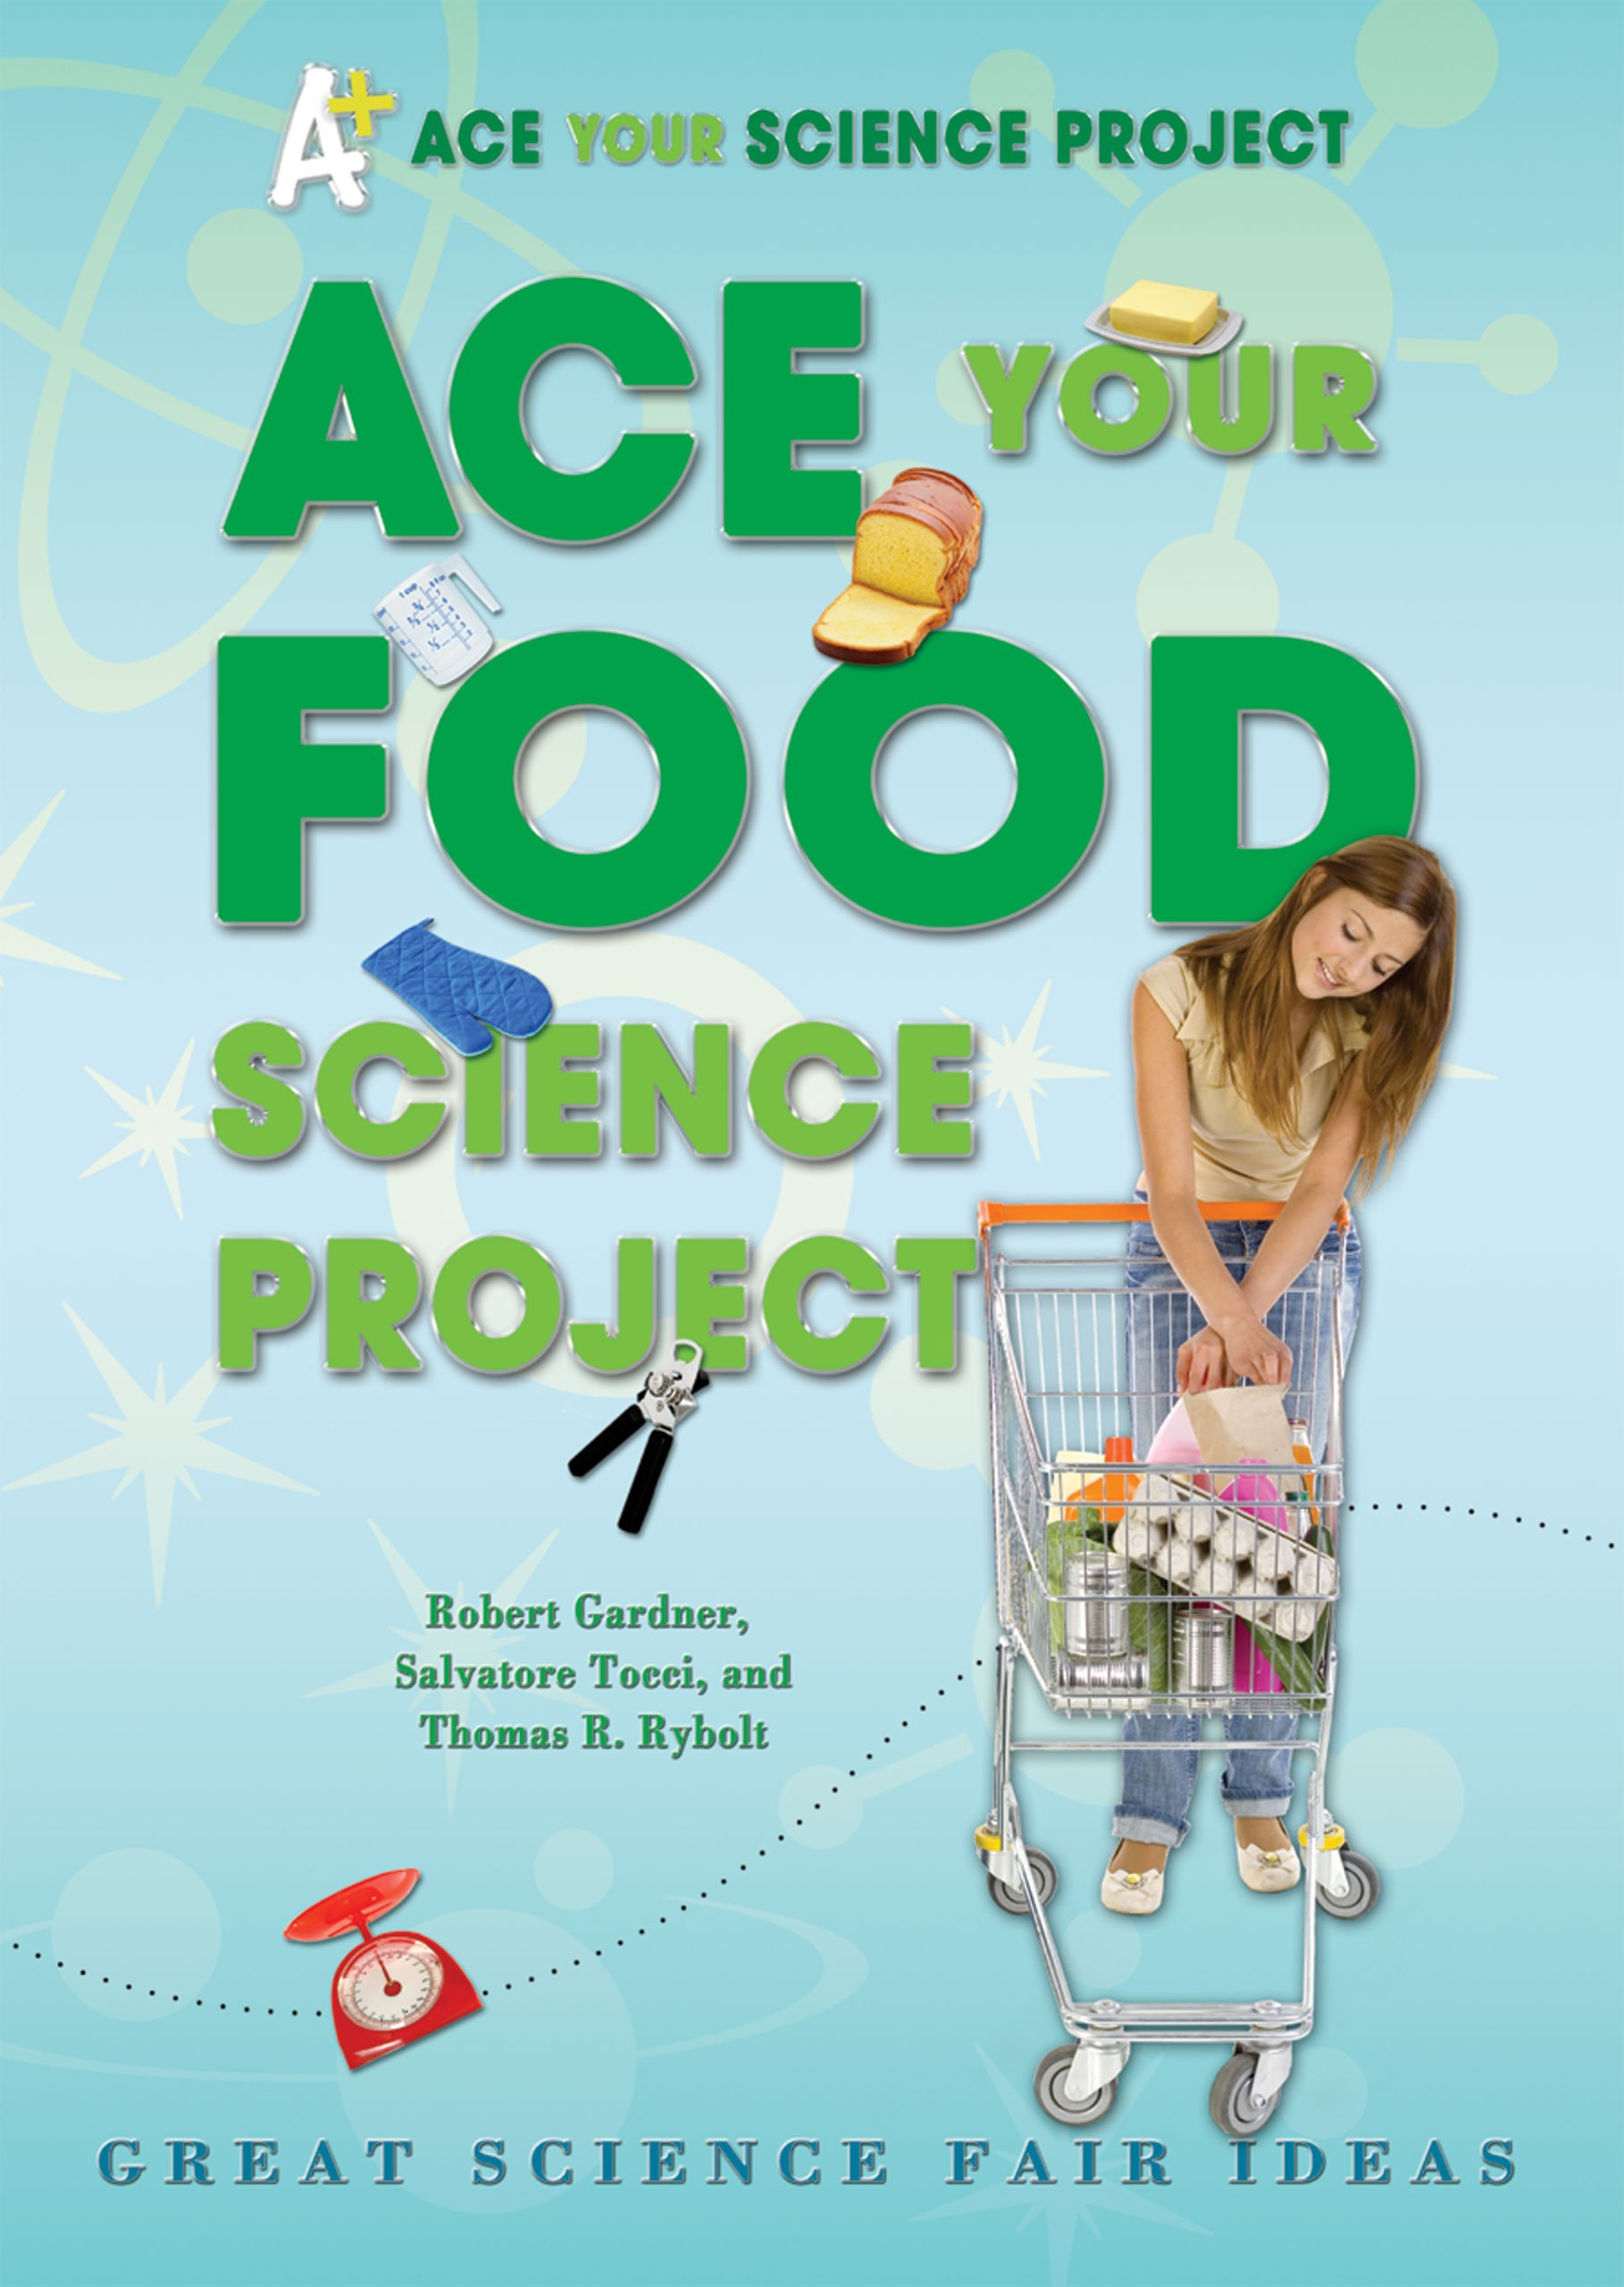 Ace Your Food Science Project Great Fair Ideas Robert Gardner Salvatore Tocci Thomas R Rybolt 9780766032286